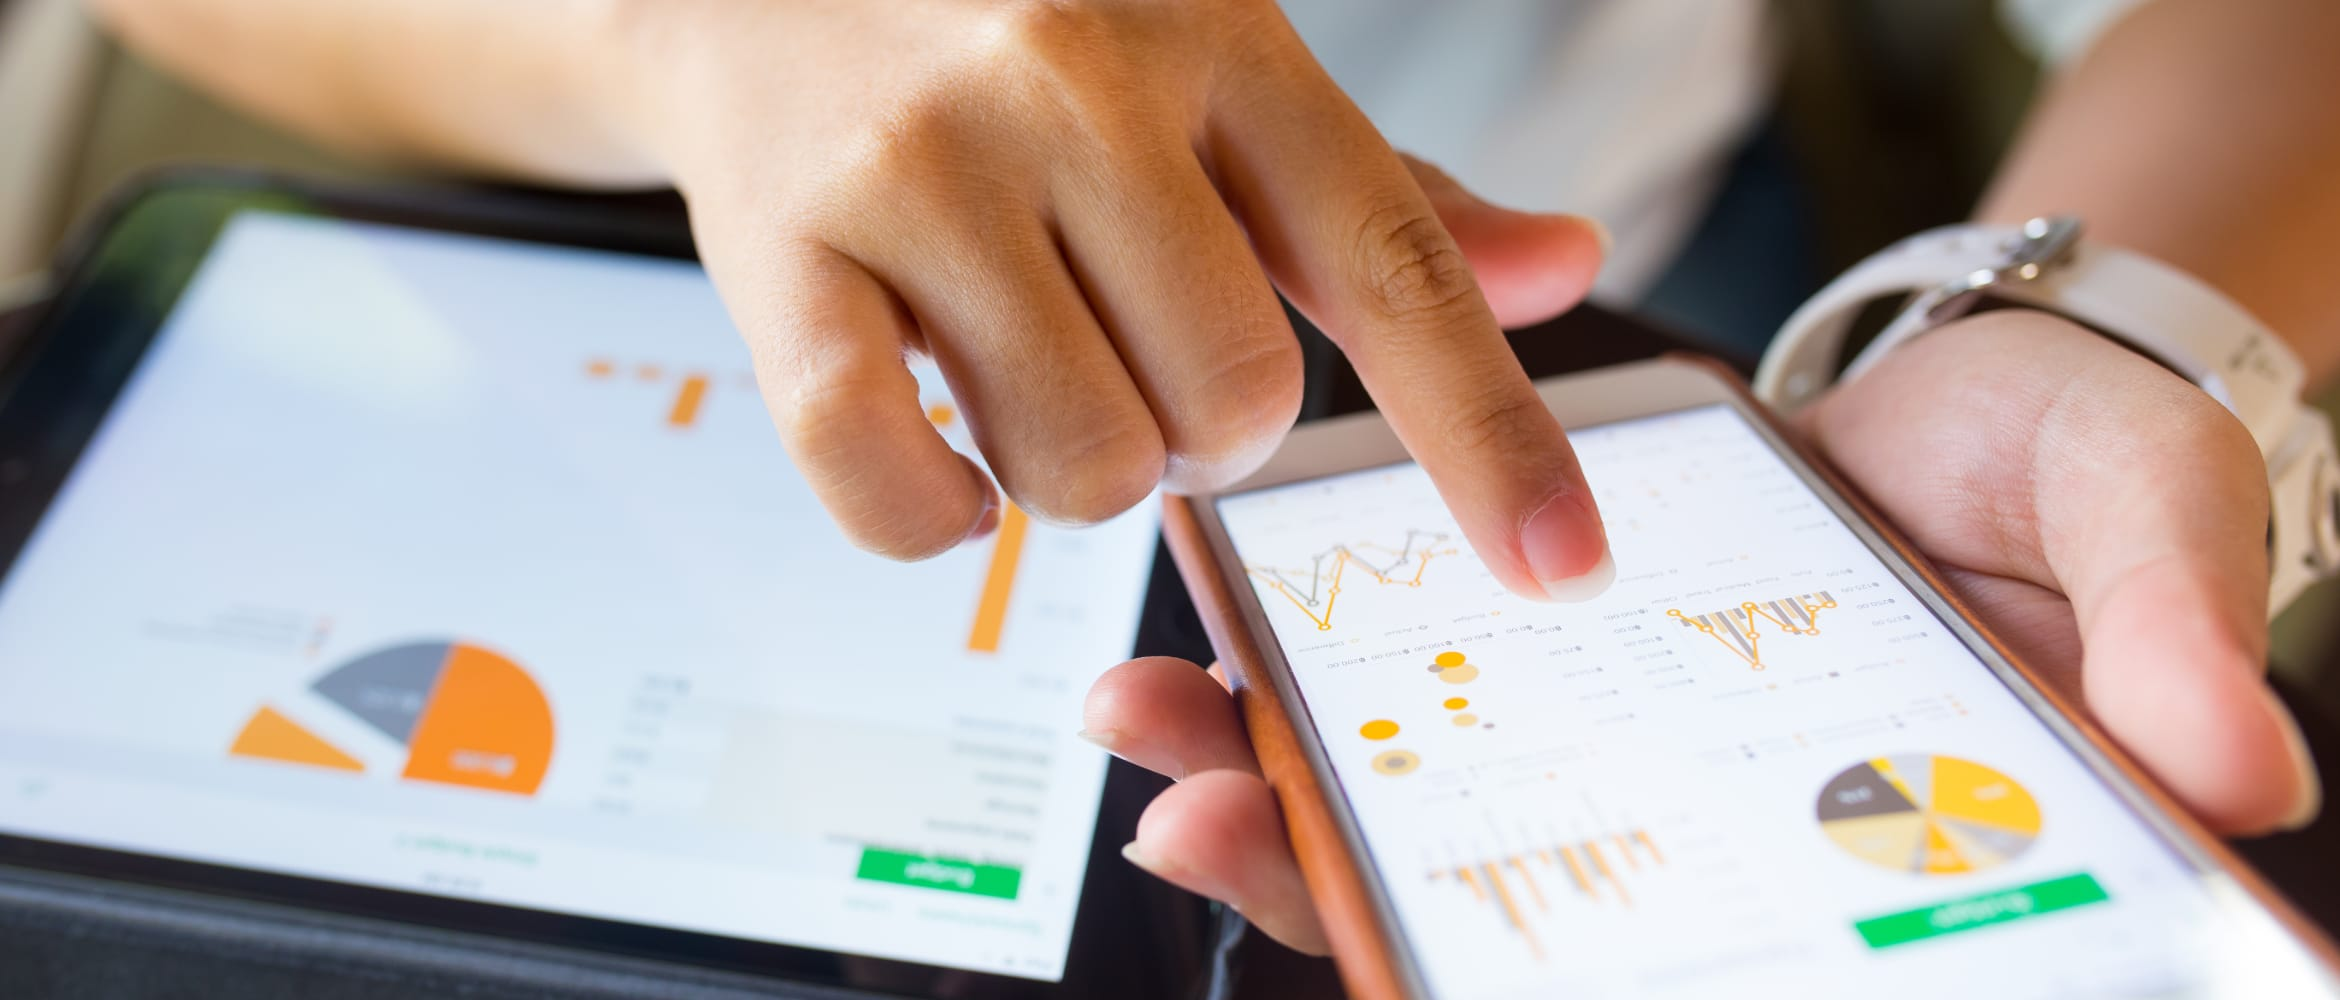 Businesswoman checking data on smartphone and tablet device